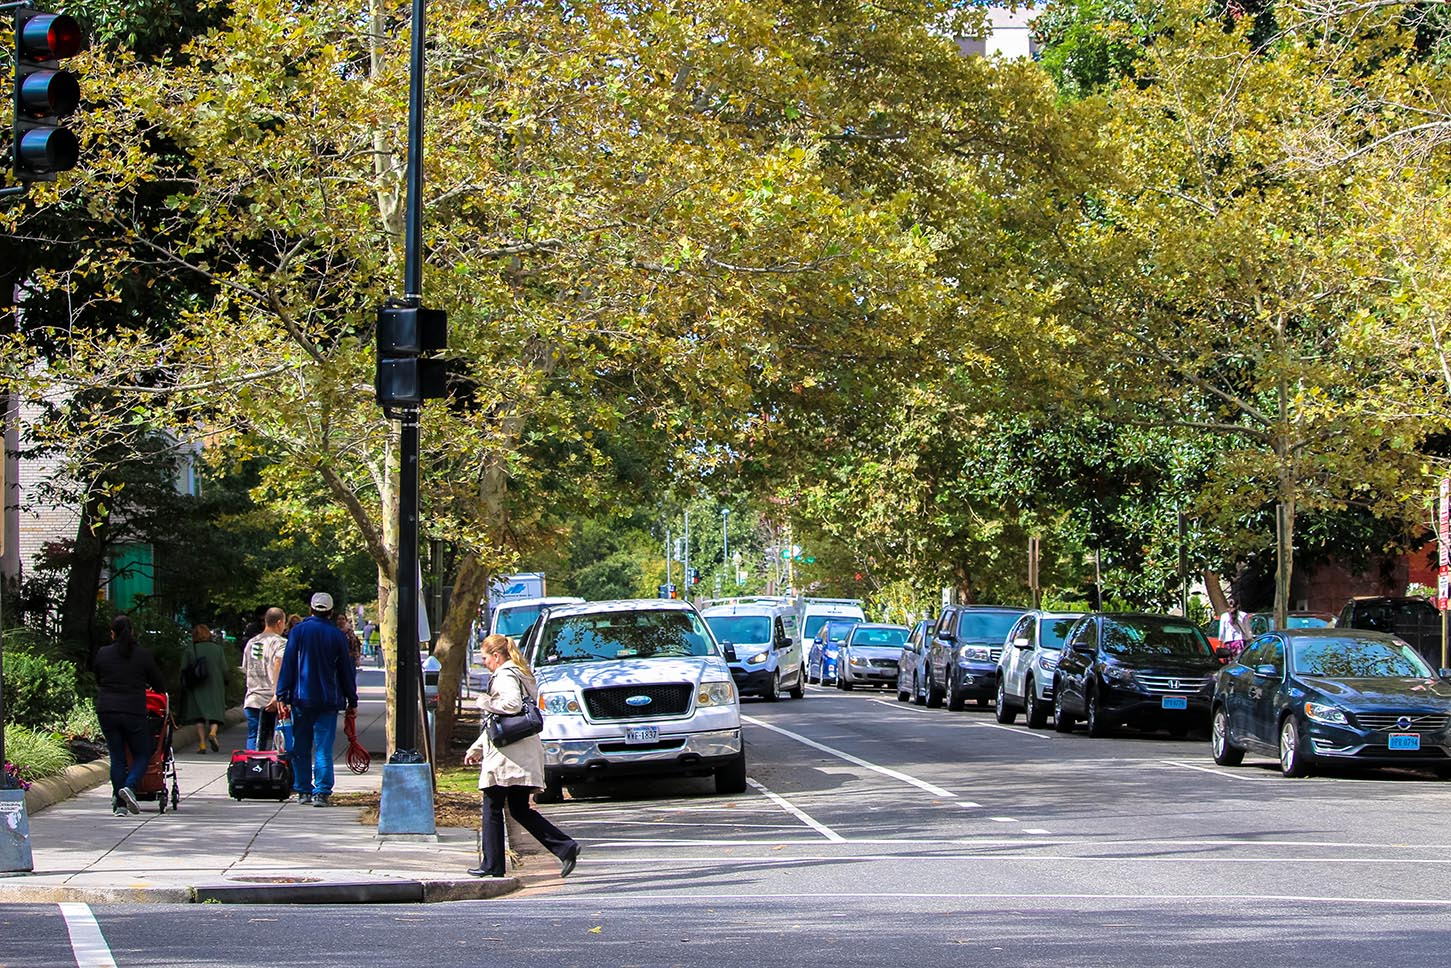 Pedestrians in Dupont Circle, Washington, D.C.